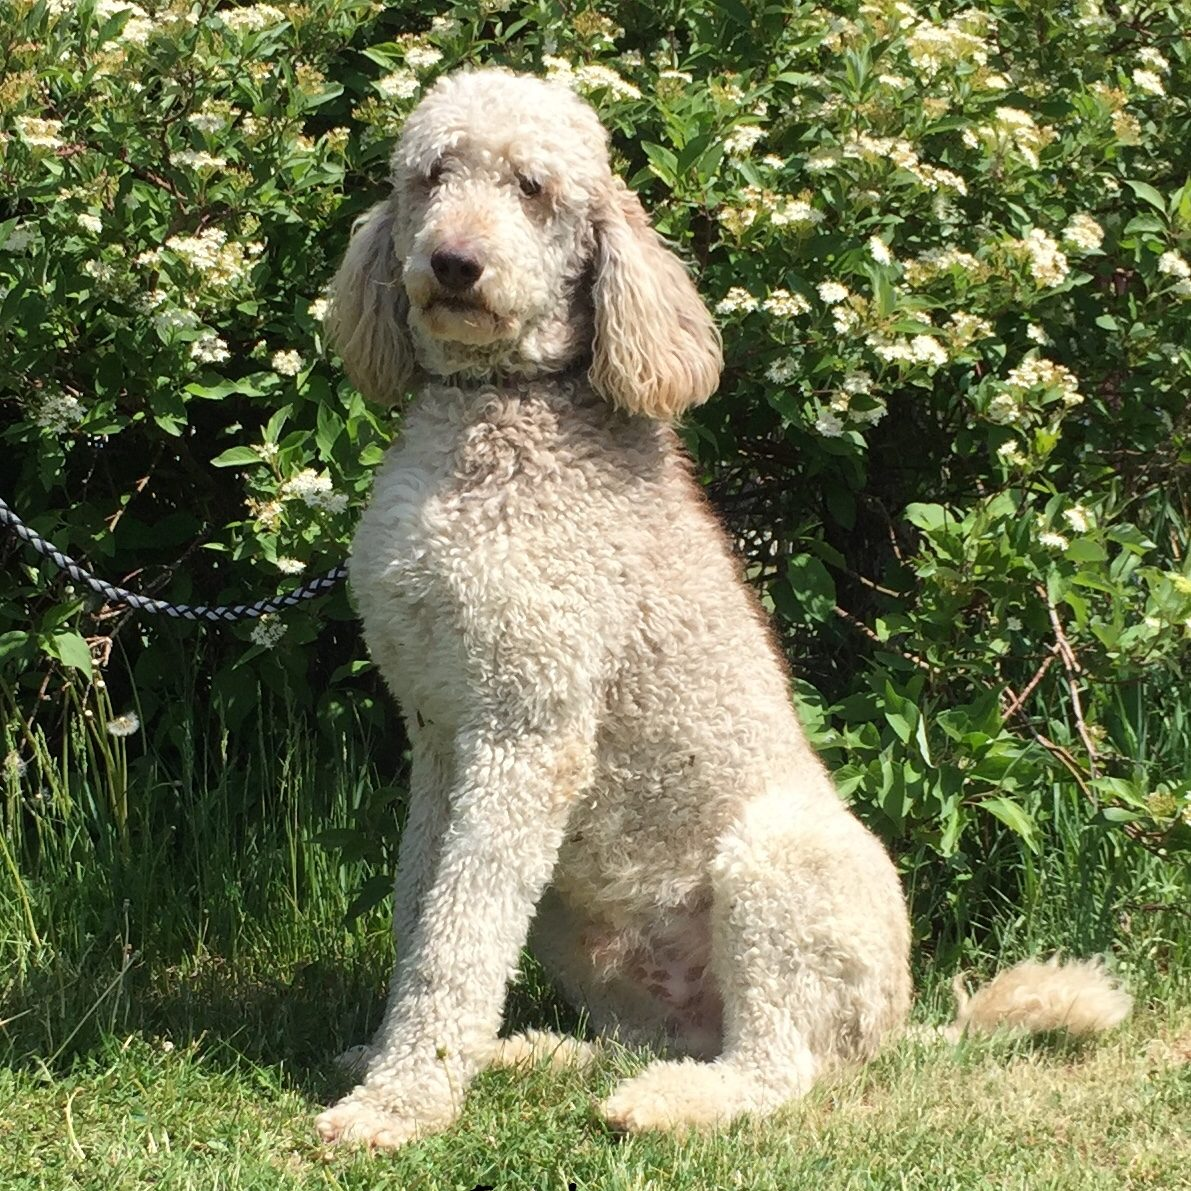 Jack - Standard Poodle from Dogs of Jersey Acres